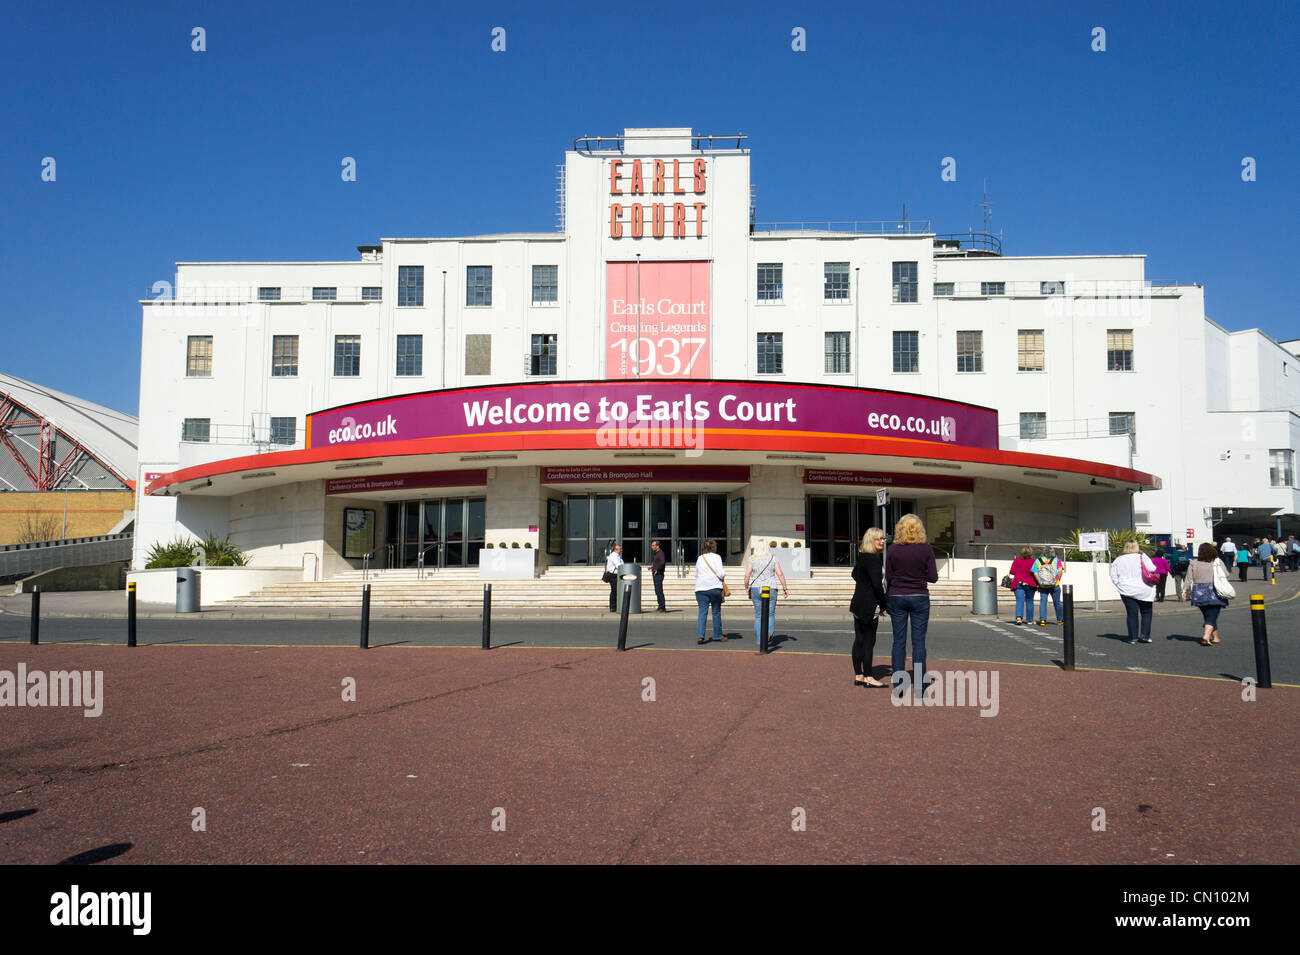 Earls Court exhibition hall, conference centre corporate ...